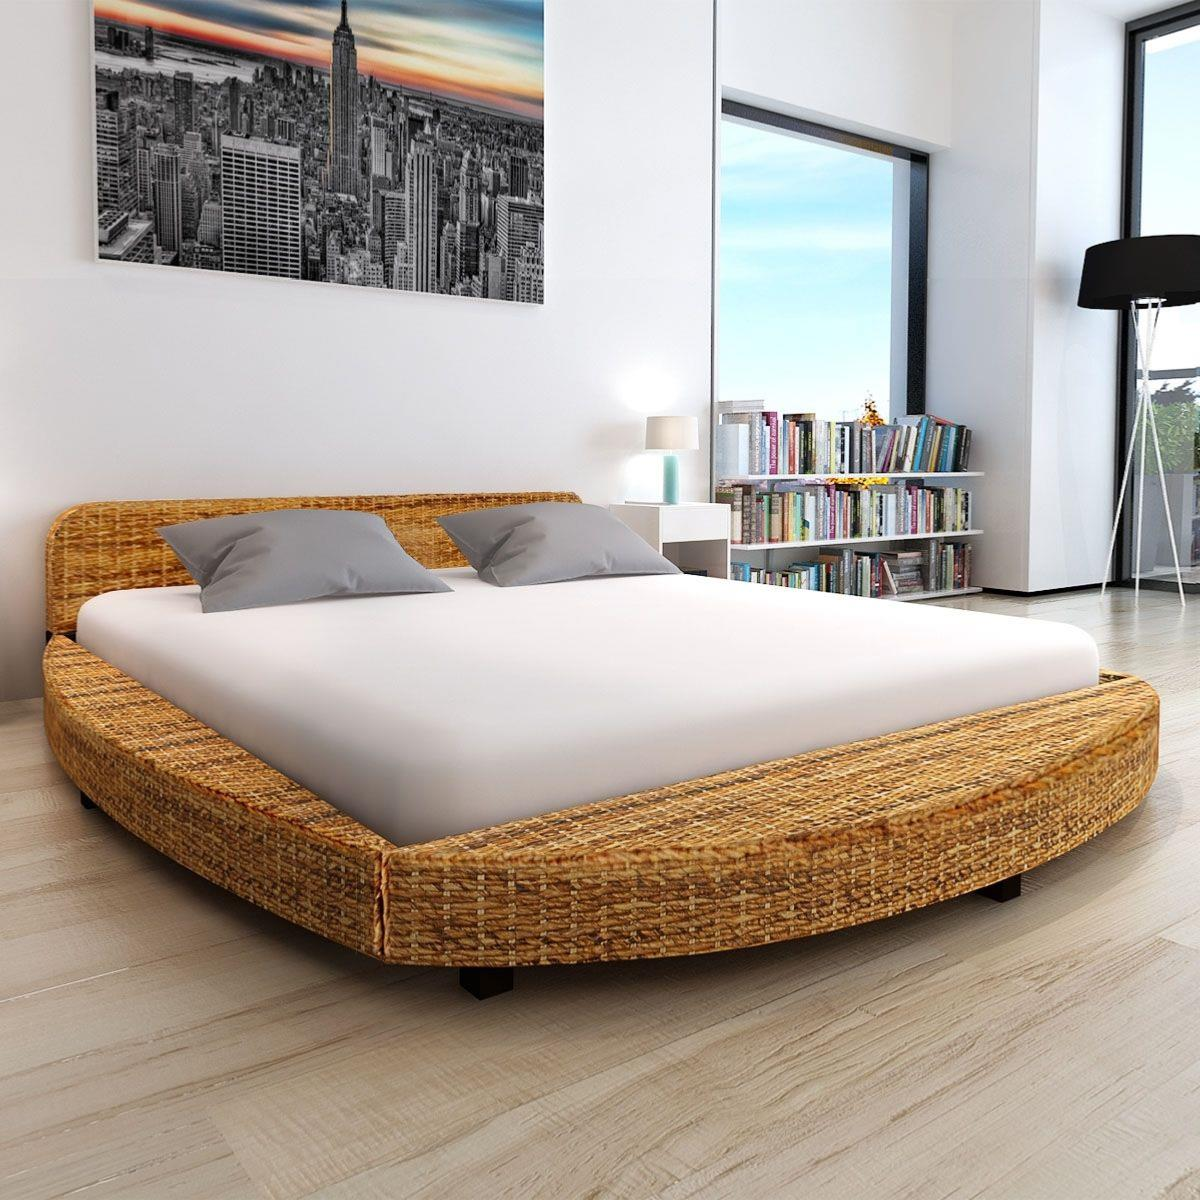 lit rond en bois d 39 acajou et abaca pour matelas 180 x 200 cm. Black Bedroom Furniture Sets. Home Design Ideas